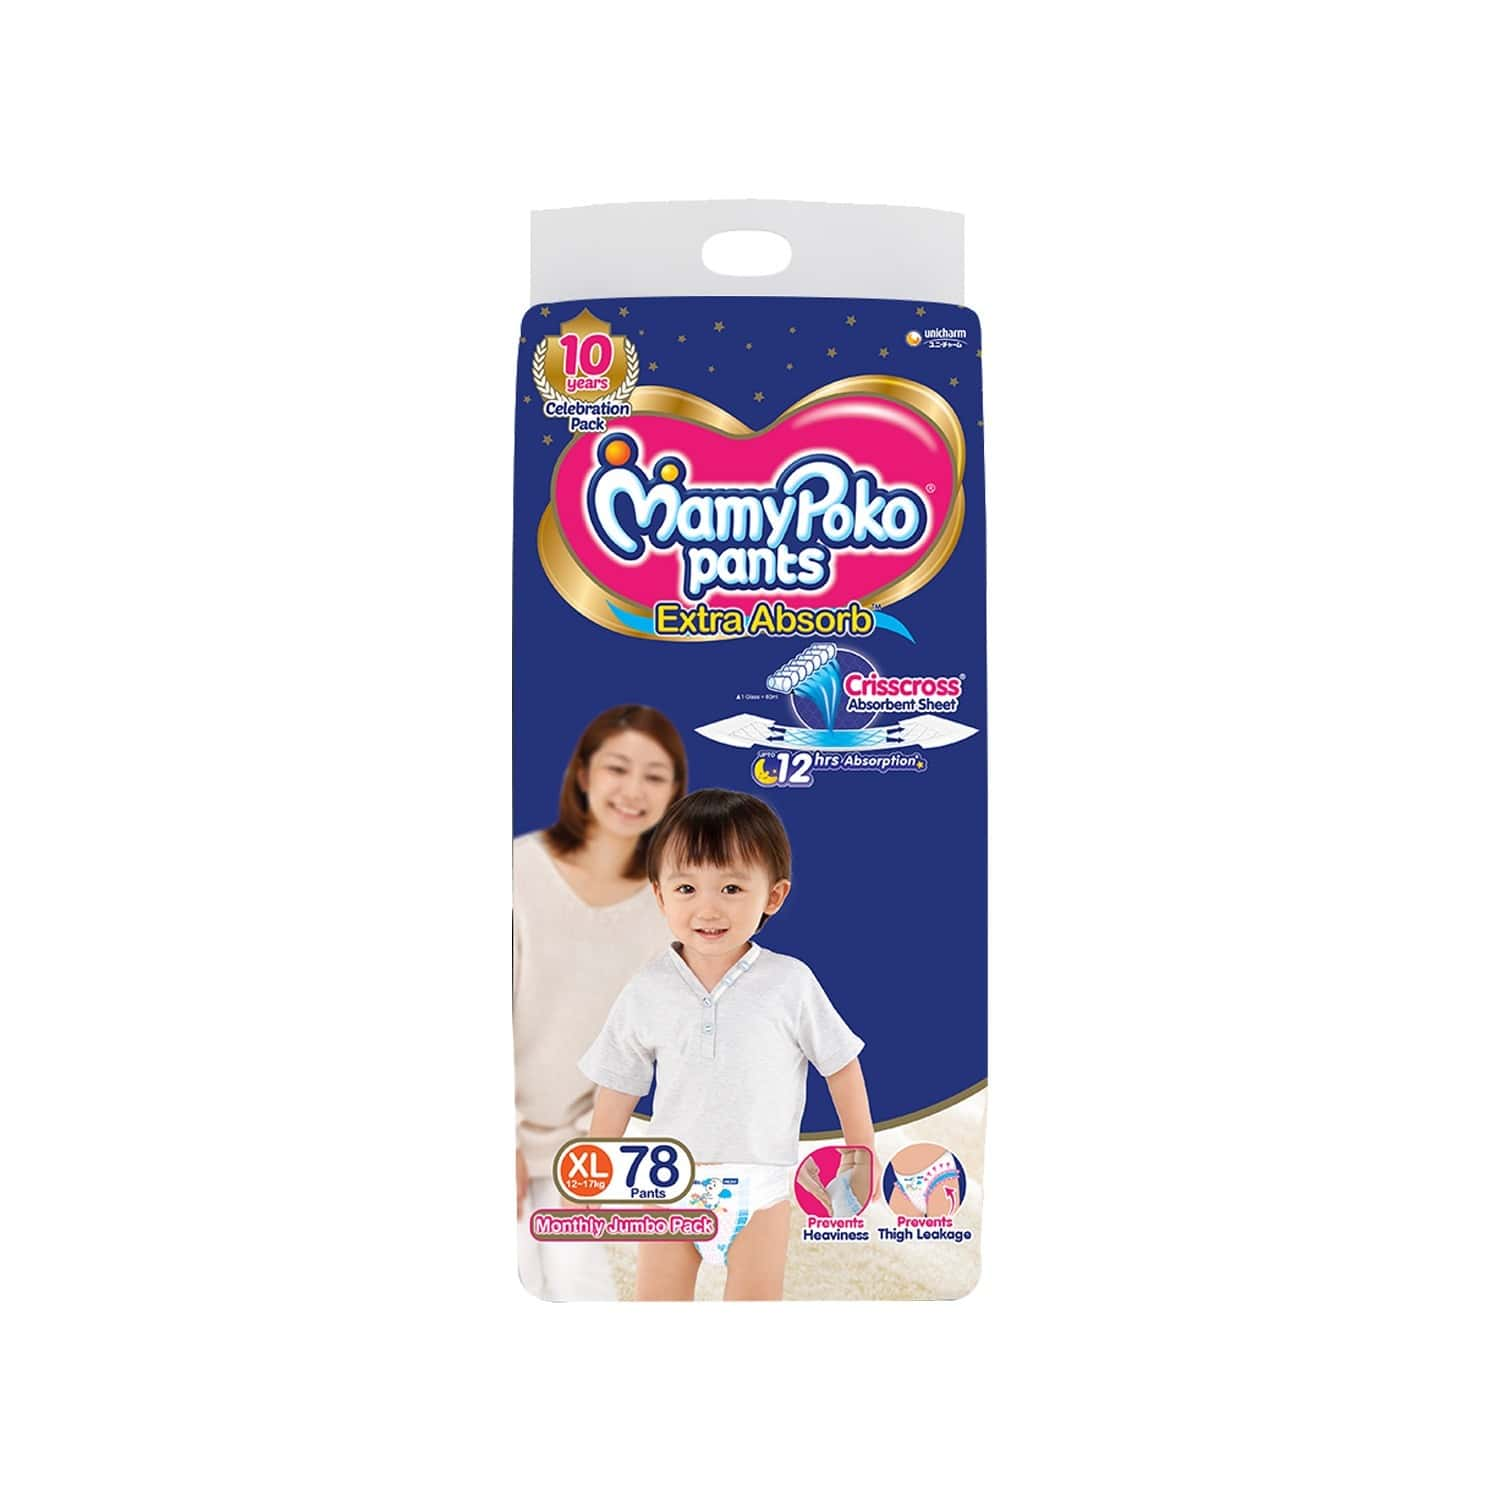 Mamypoko Pants Extra Absorb Diaper - Extra Large Size, Pack Of 78 Diapers